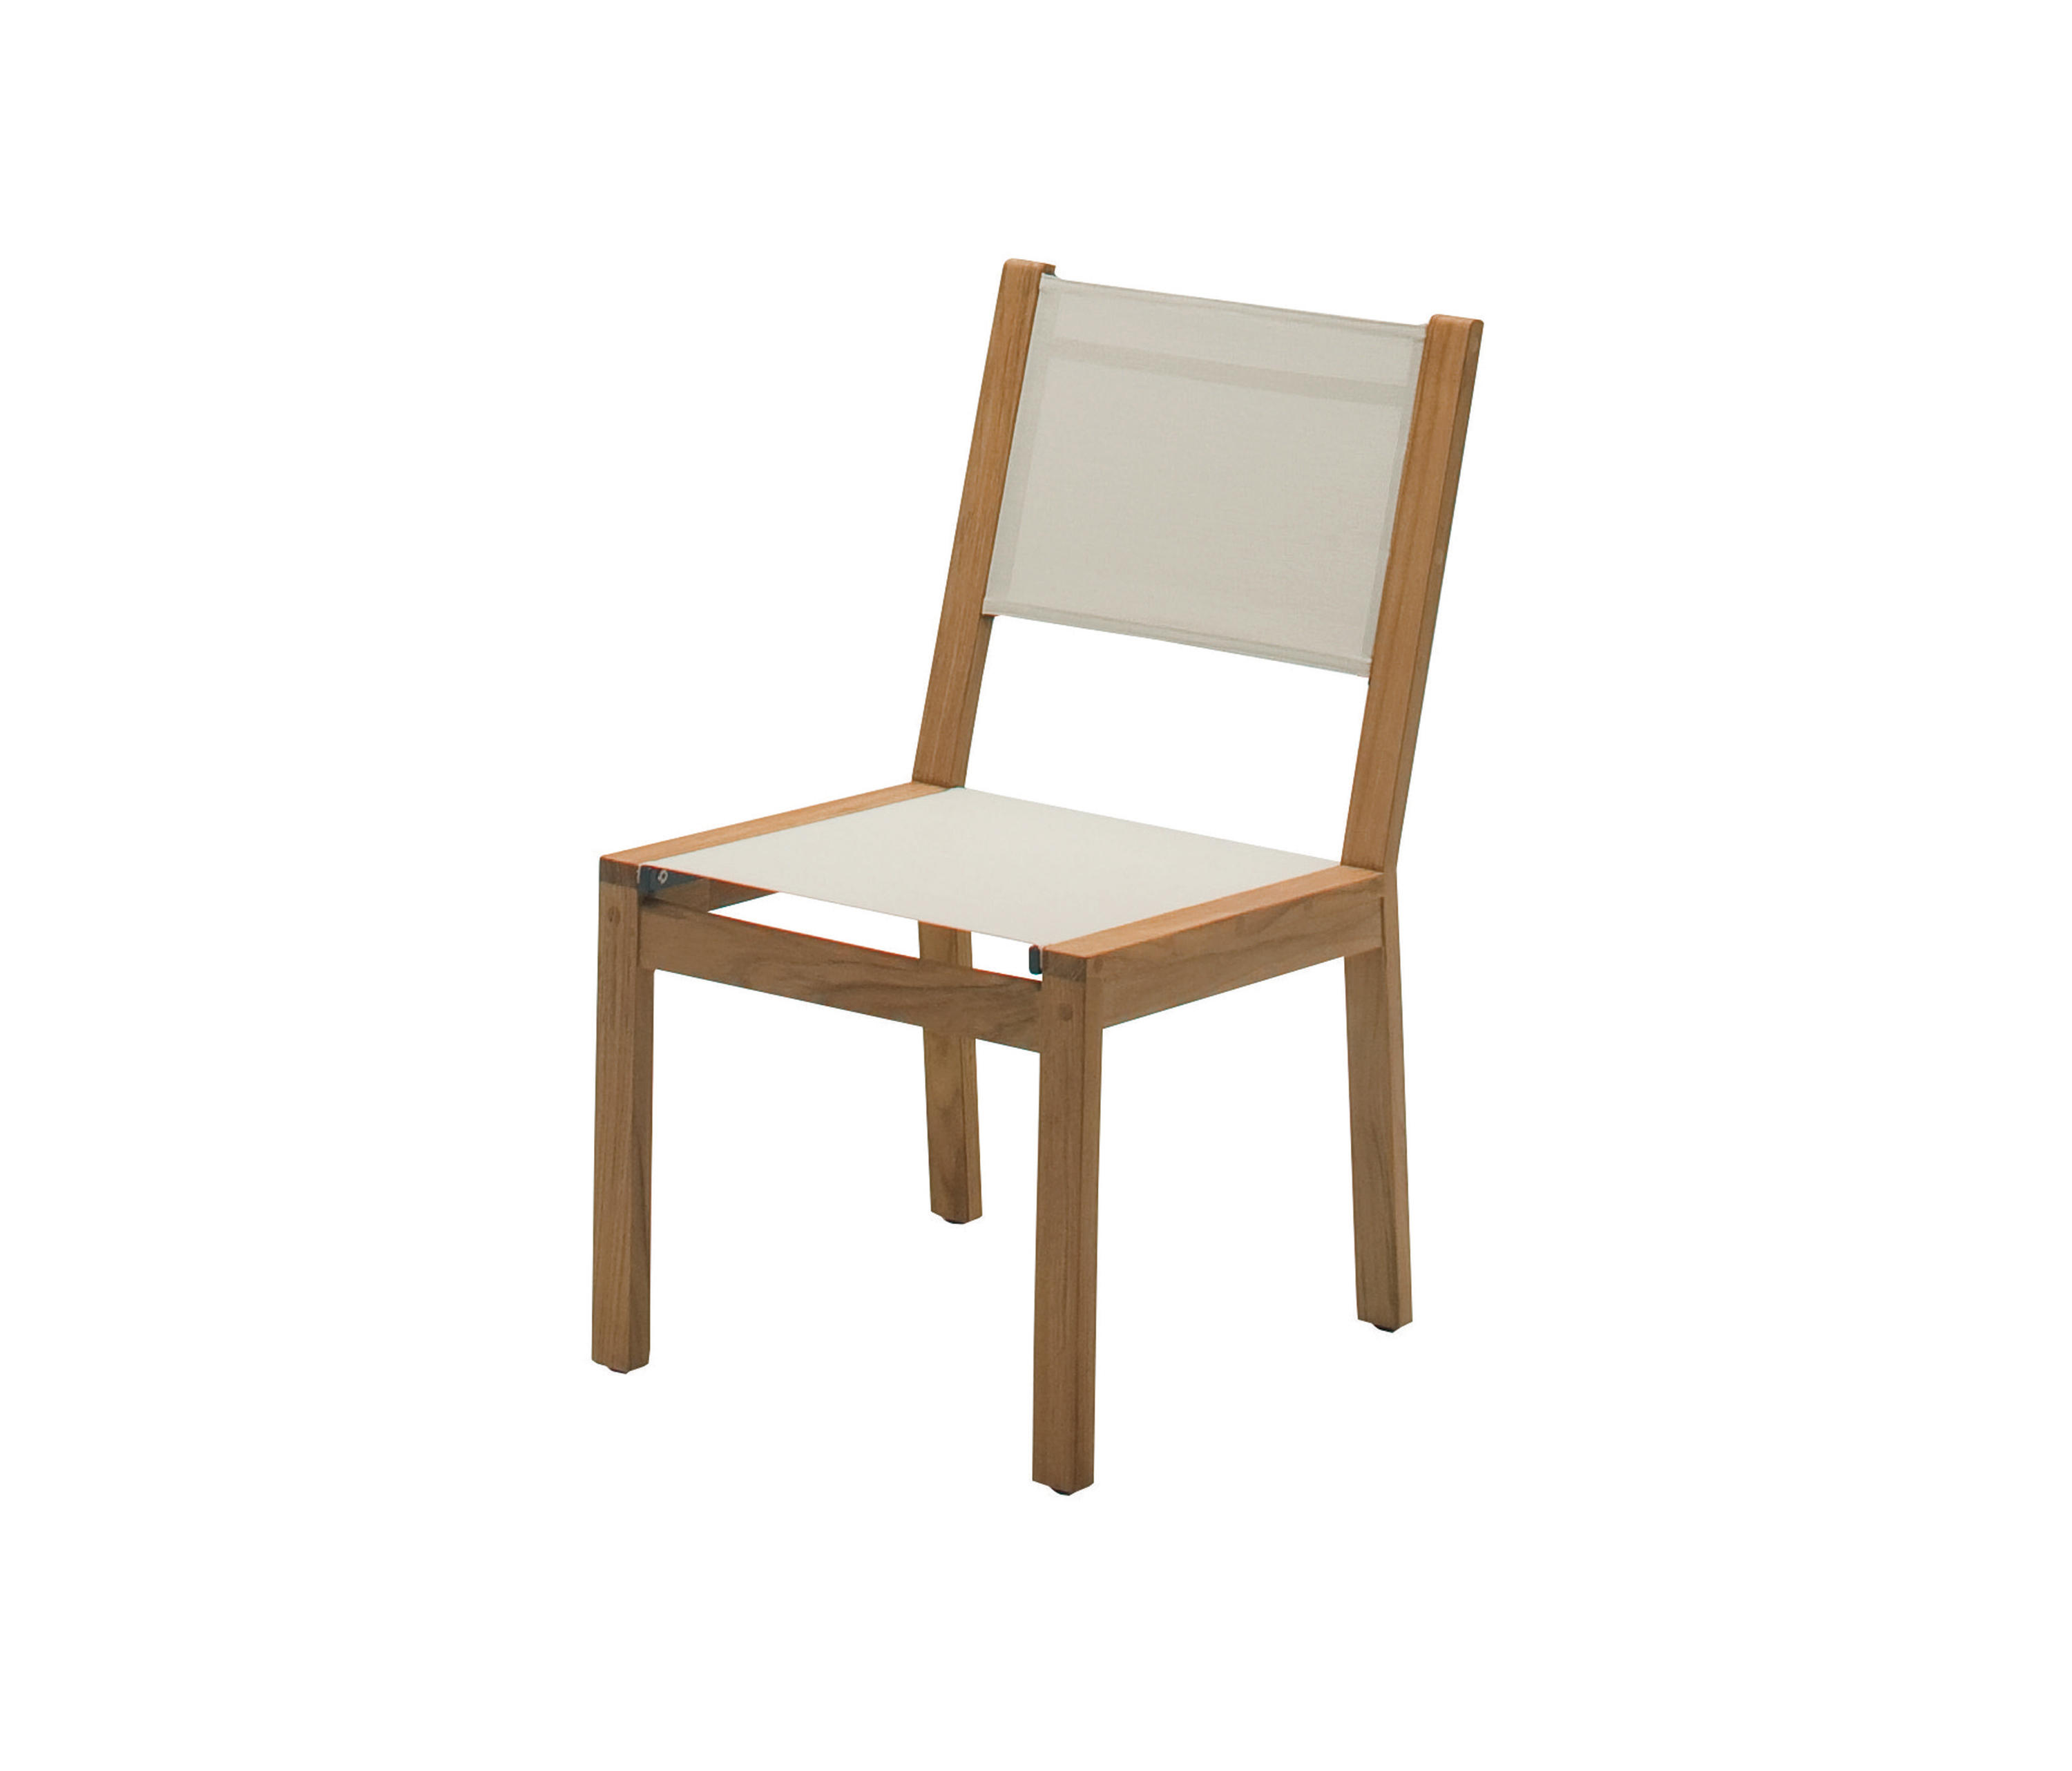 Solana dining chair garden chairs by gloster furniture for Furniture furniture furniture